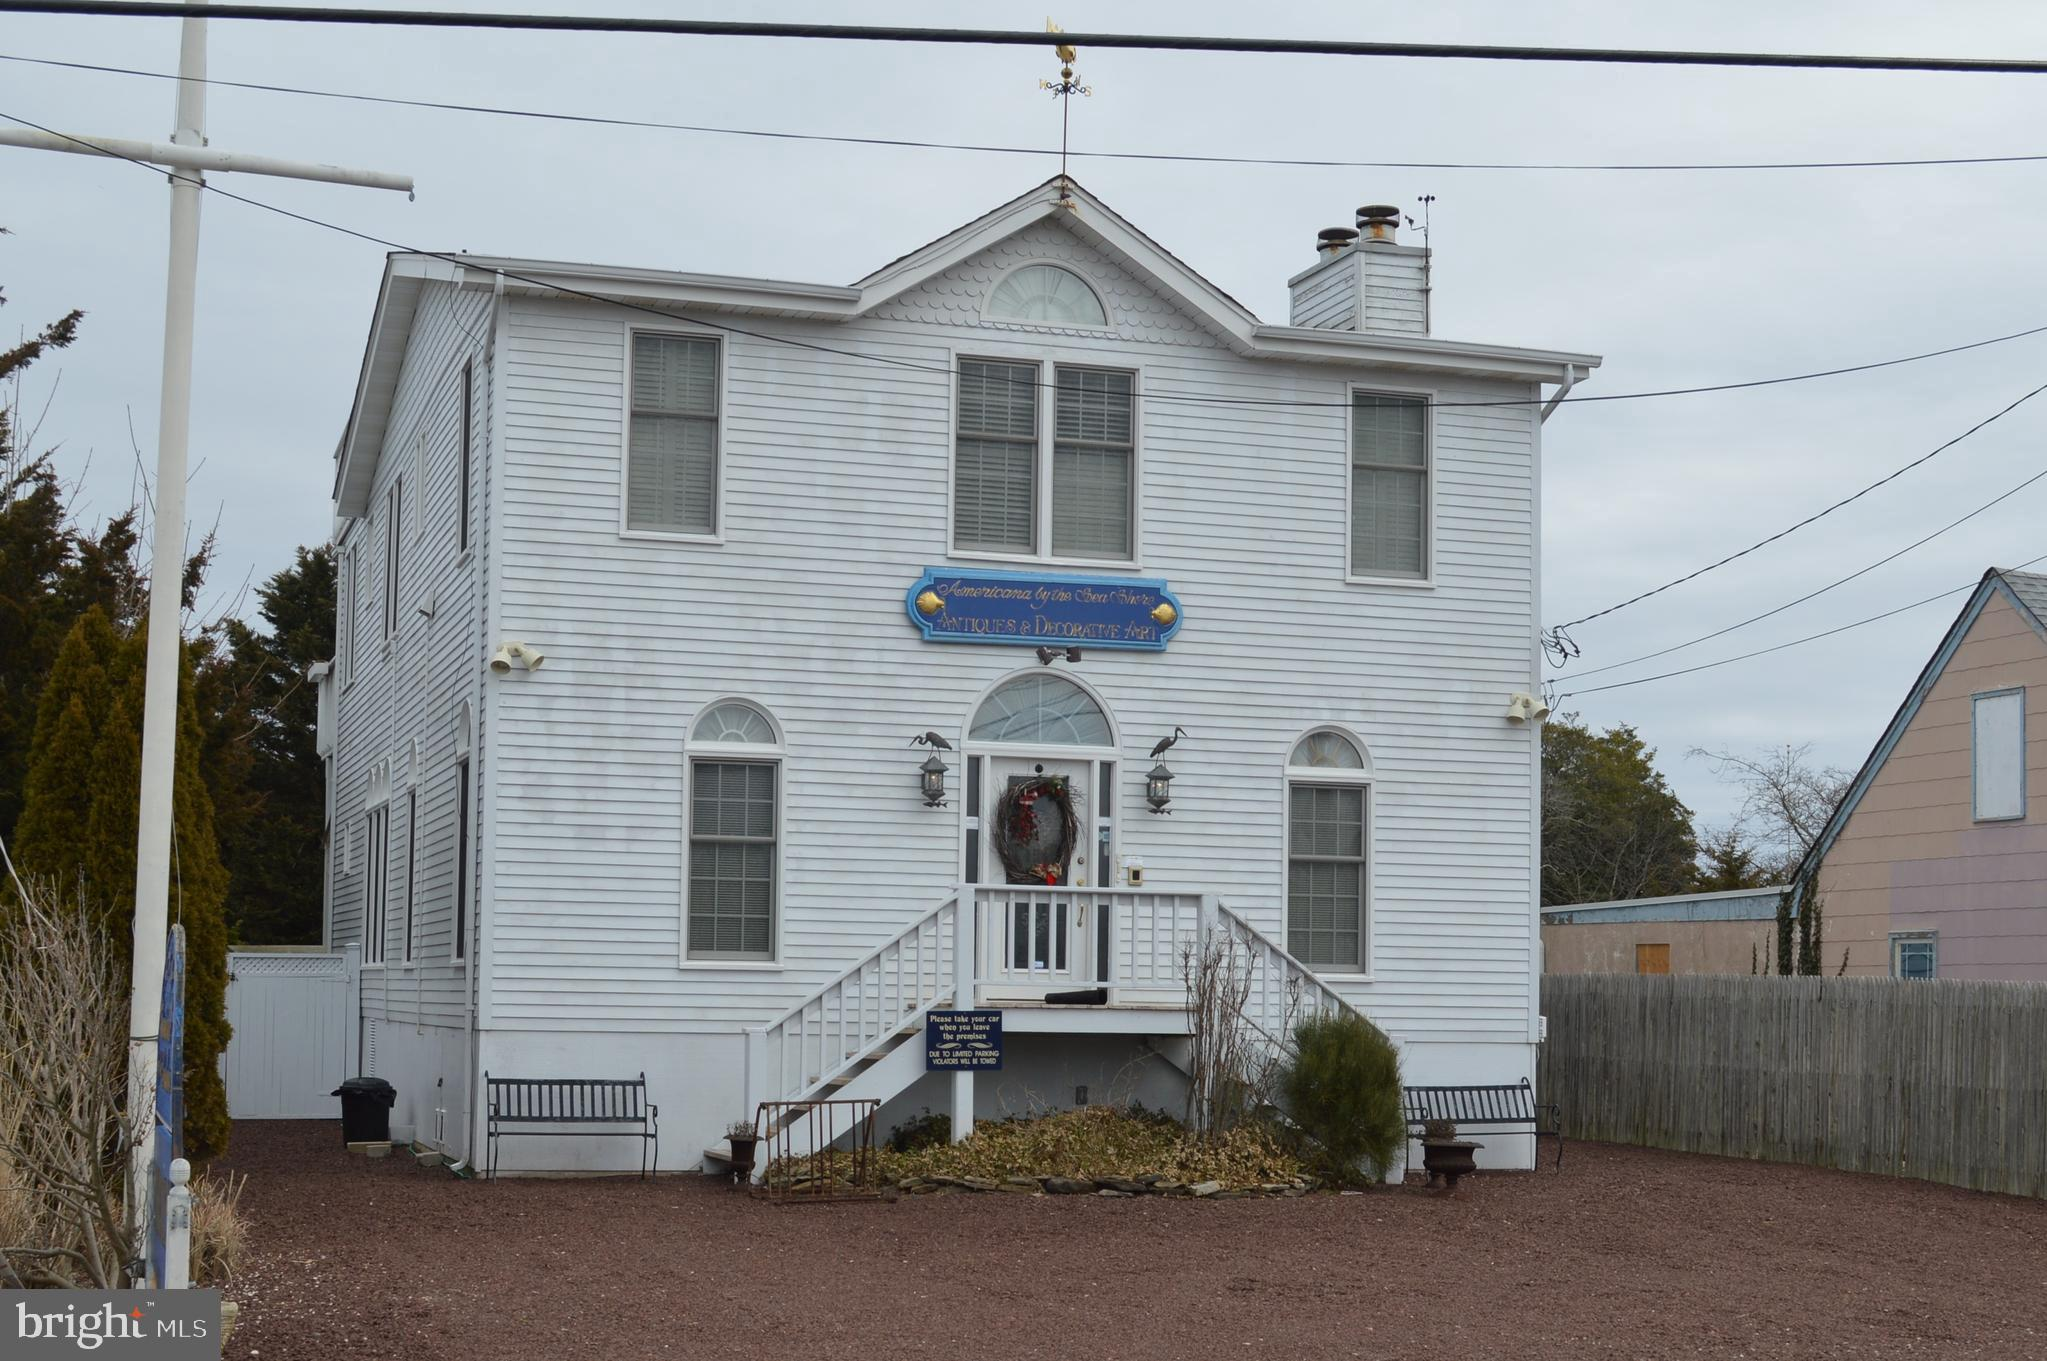 604 BROADWAY, BARNEGAT LIGHT, NJ 08006